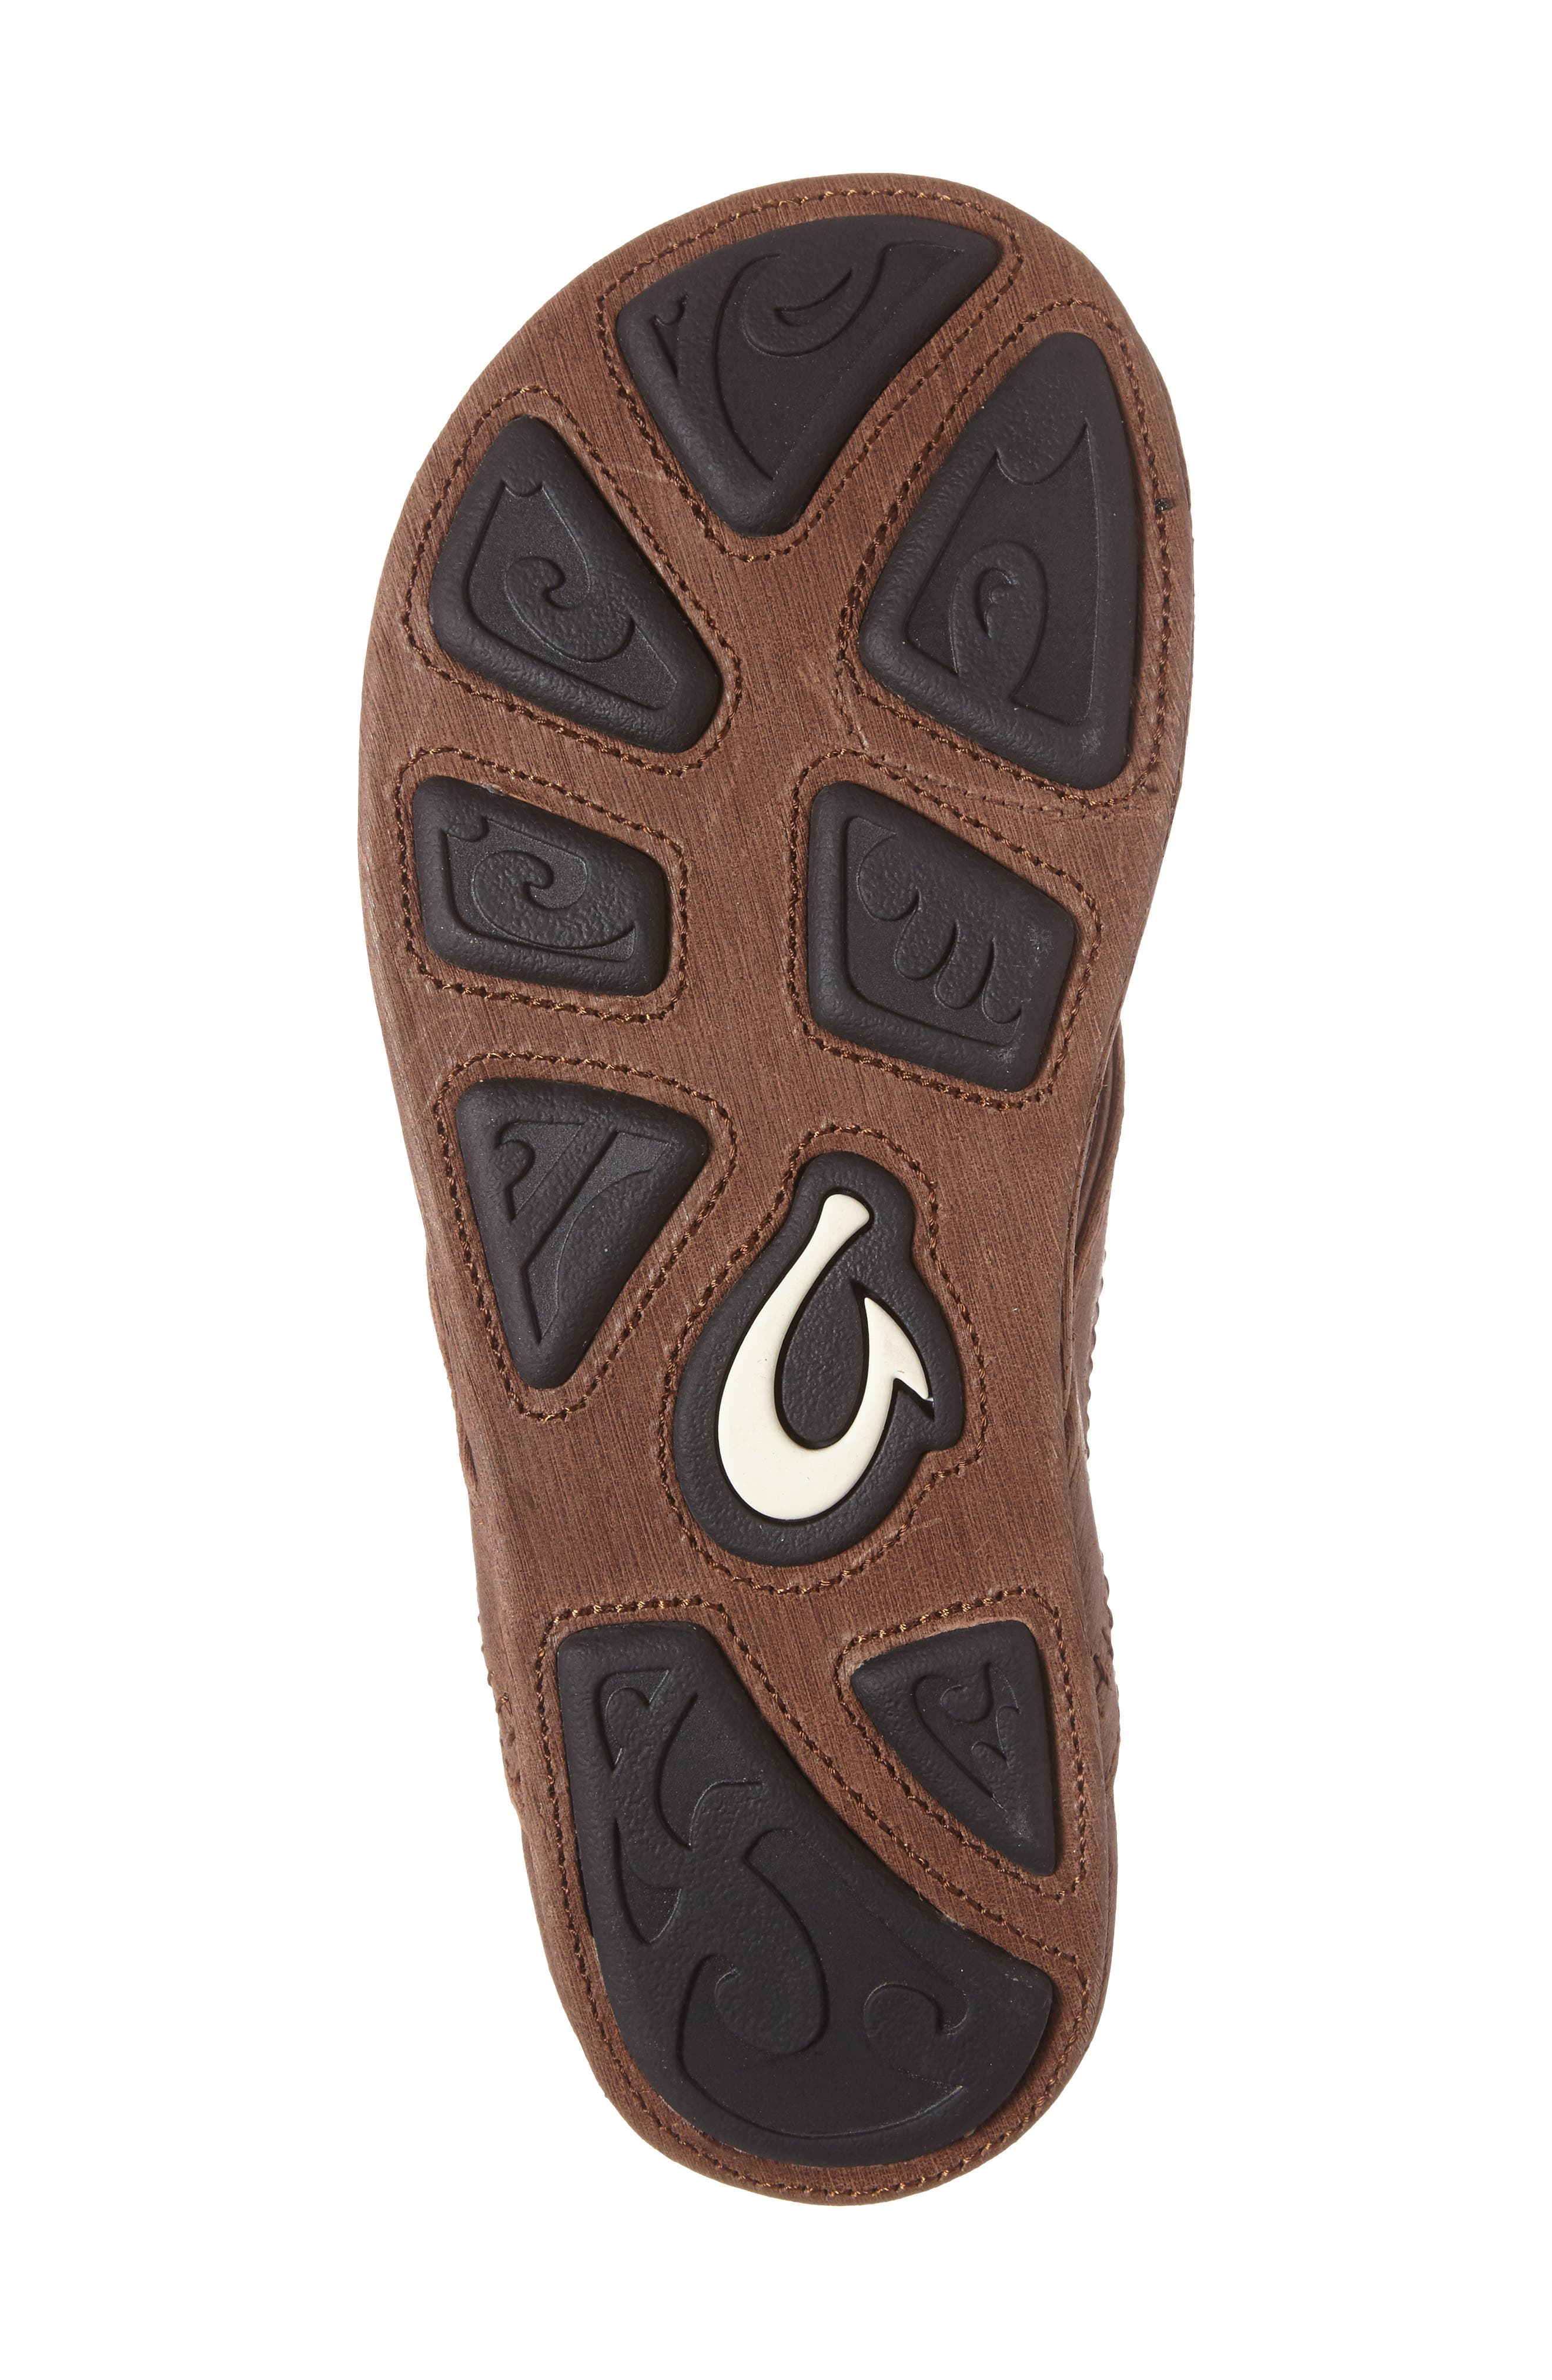 'Hiapo' Flip Flop,                             Alternate thumbnail 3, color,                             TOFFEE/ TOFFEE LEATHER